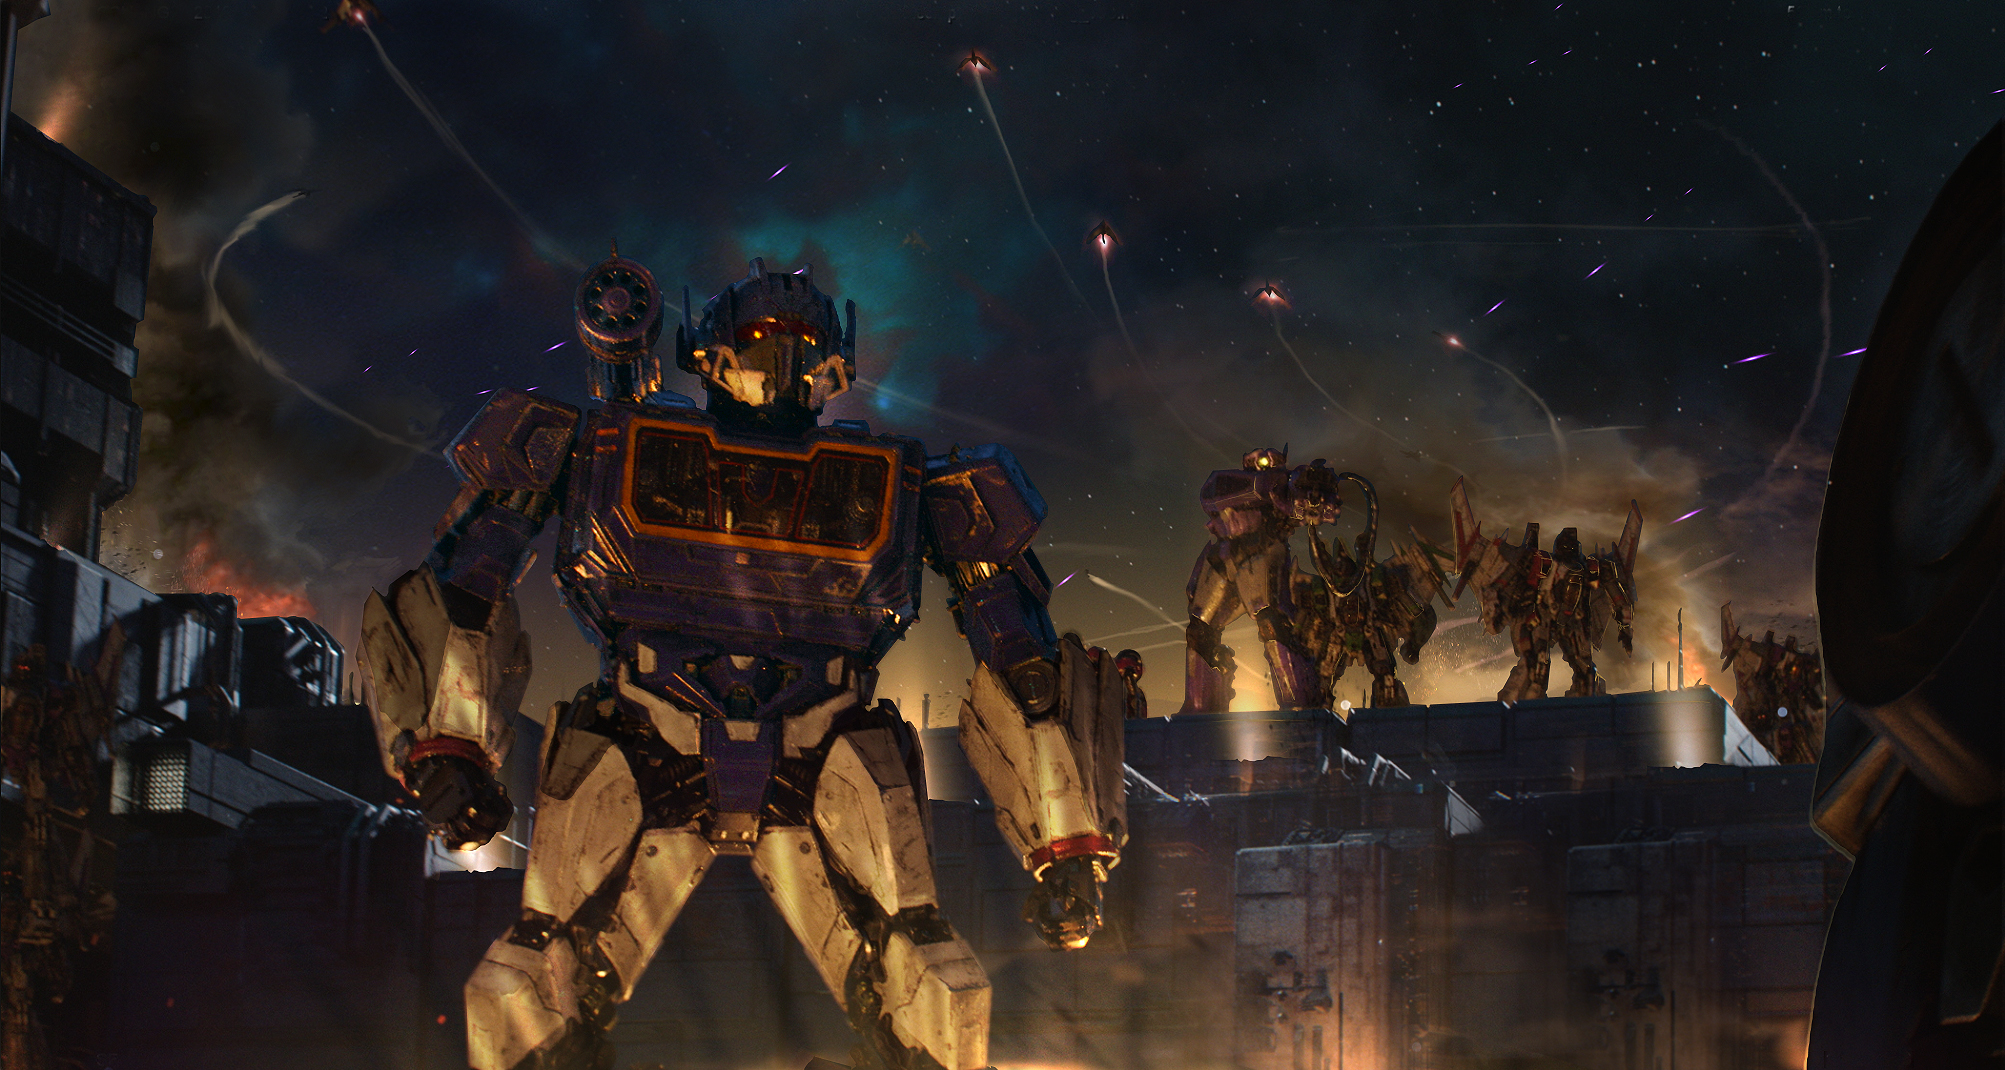 Exclusive BUMBLEBEE Concept Art Gives a Detailed Look at Cybertron_8